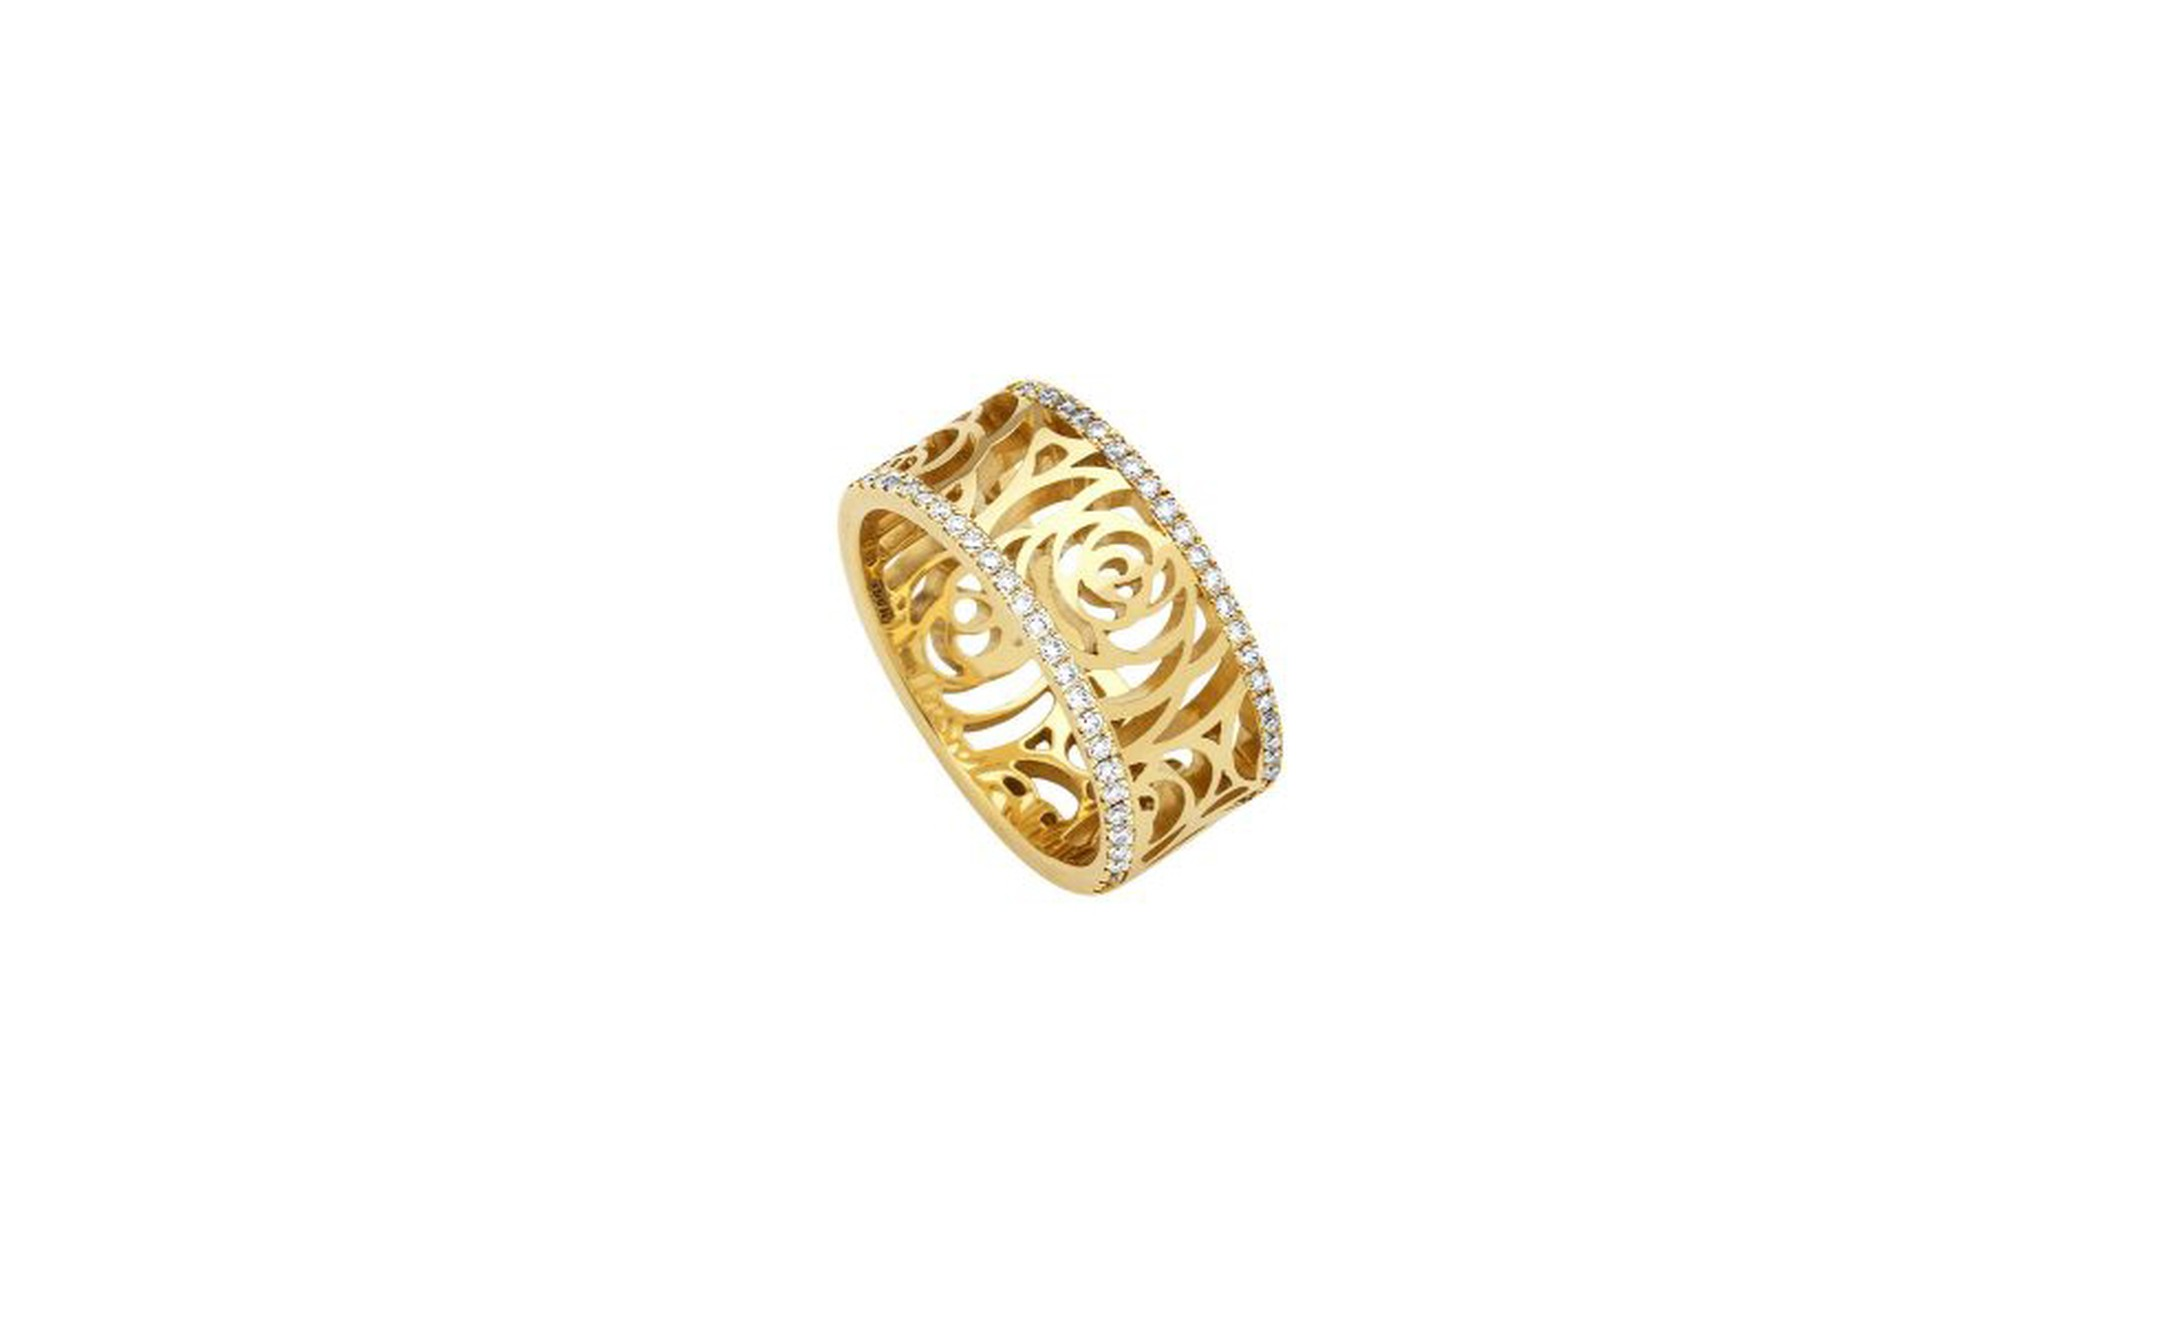 Chanel, Camélia gold ring with diamonds £2,920